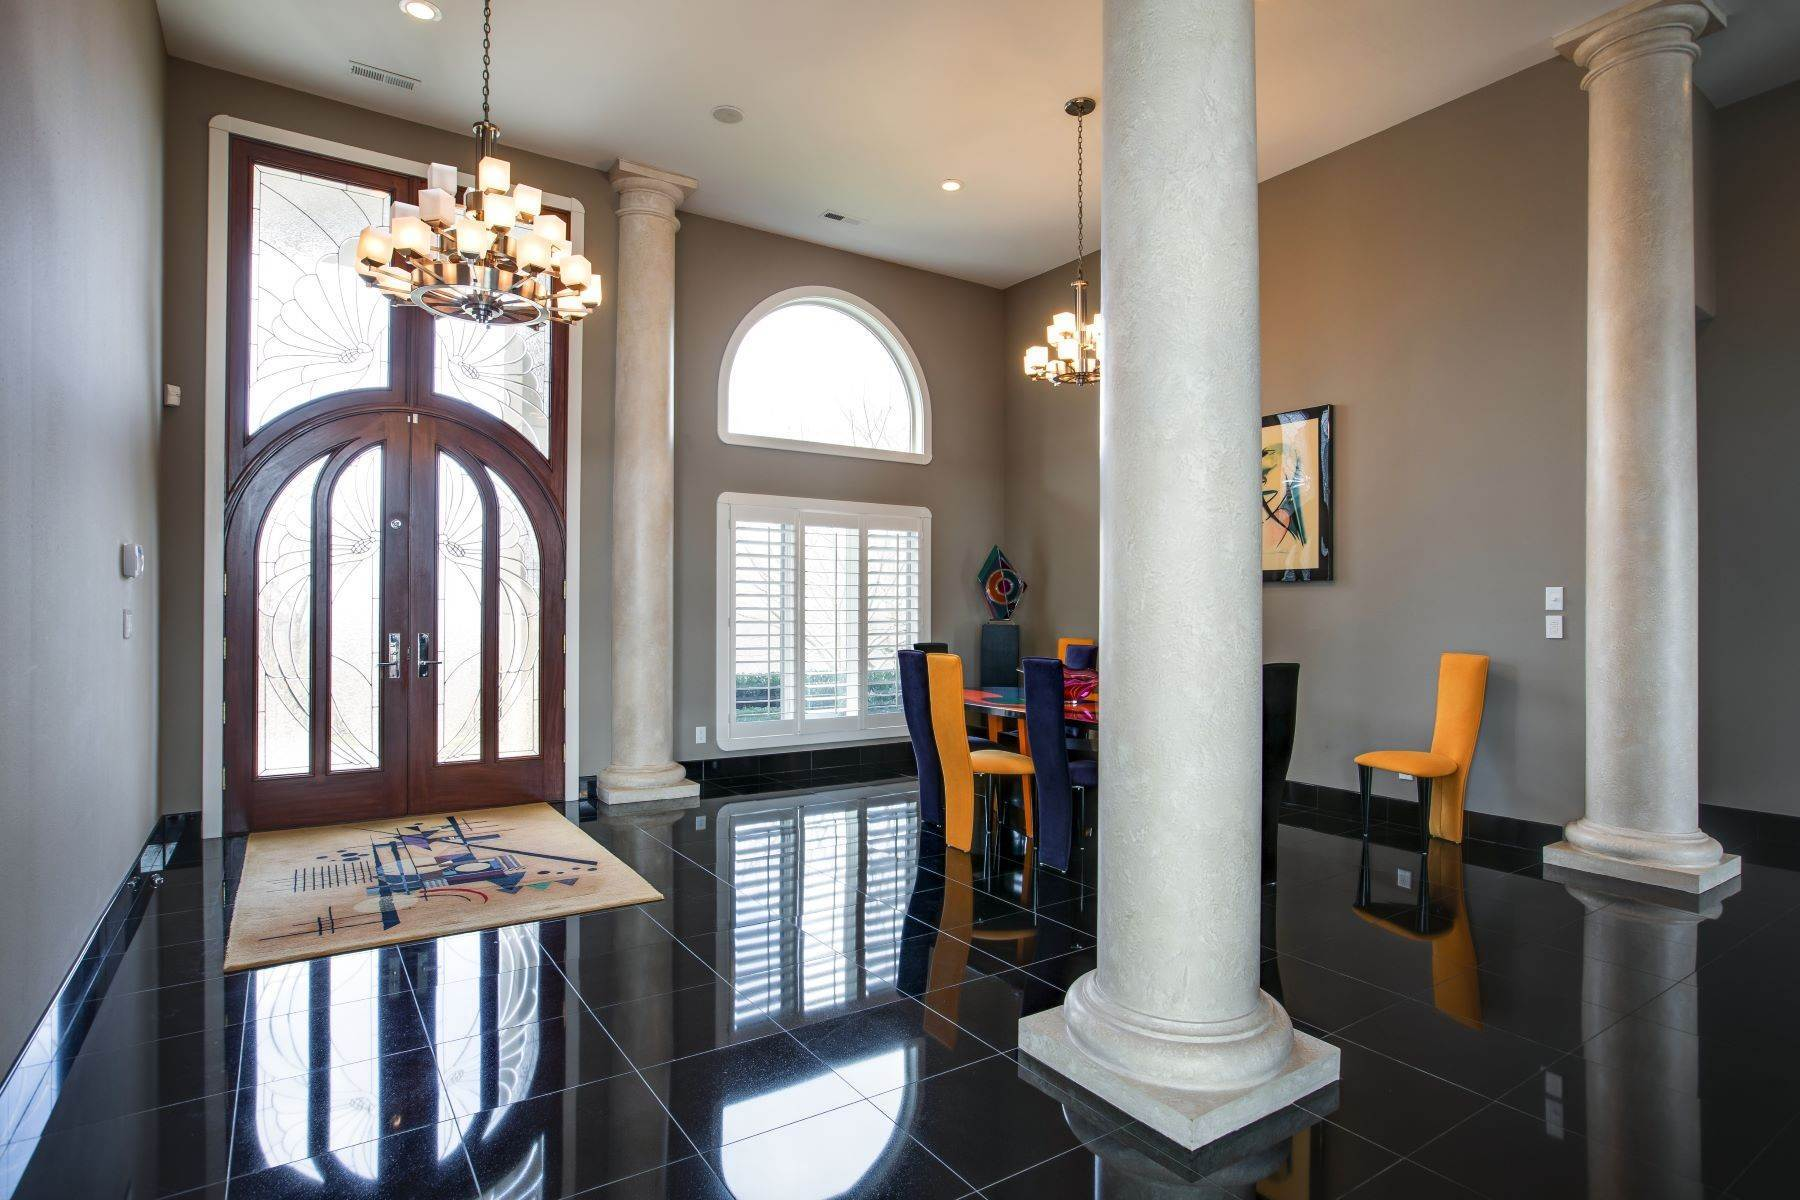 4. Single Family Homes for Sale at Luxury Brentwood Home 720 Valhalla Lane Brentwood, Tennessee 37027 United States